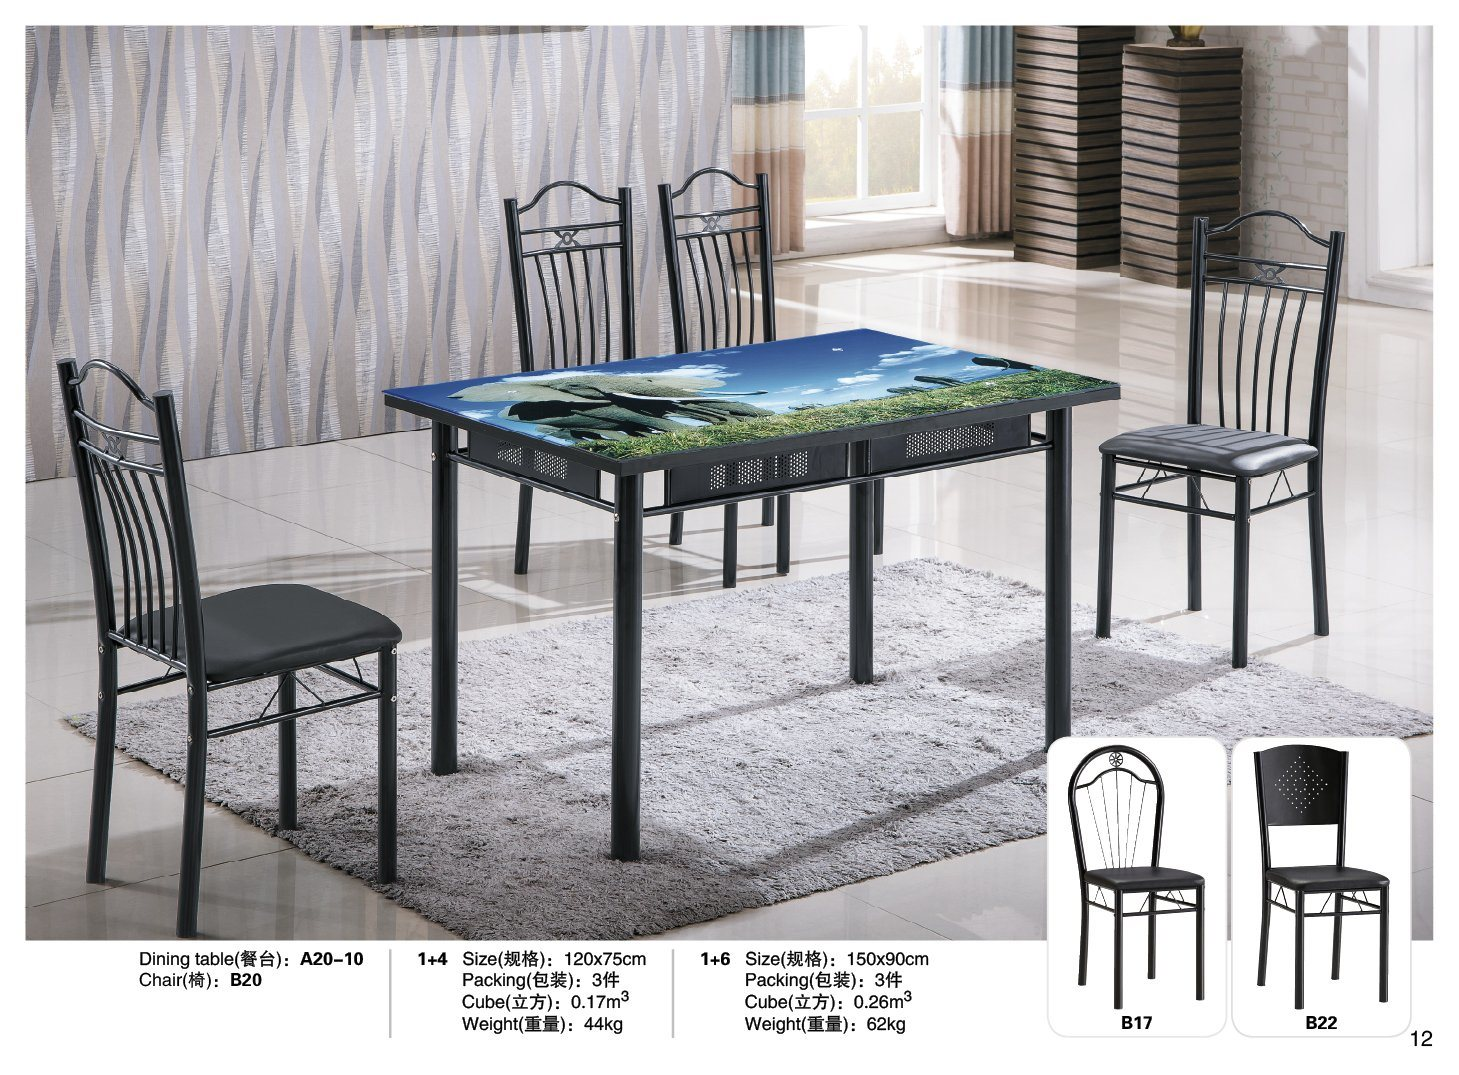 China Cheap Price Dining Sets 1 4 1 6 Hot Selling To Africa Philippine Middle East Popular Dining Table China Furniture 2018 New Design Glass Dining Table